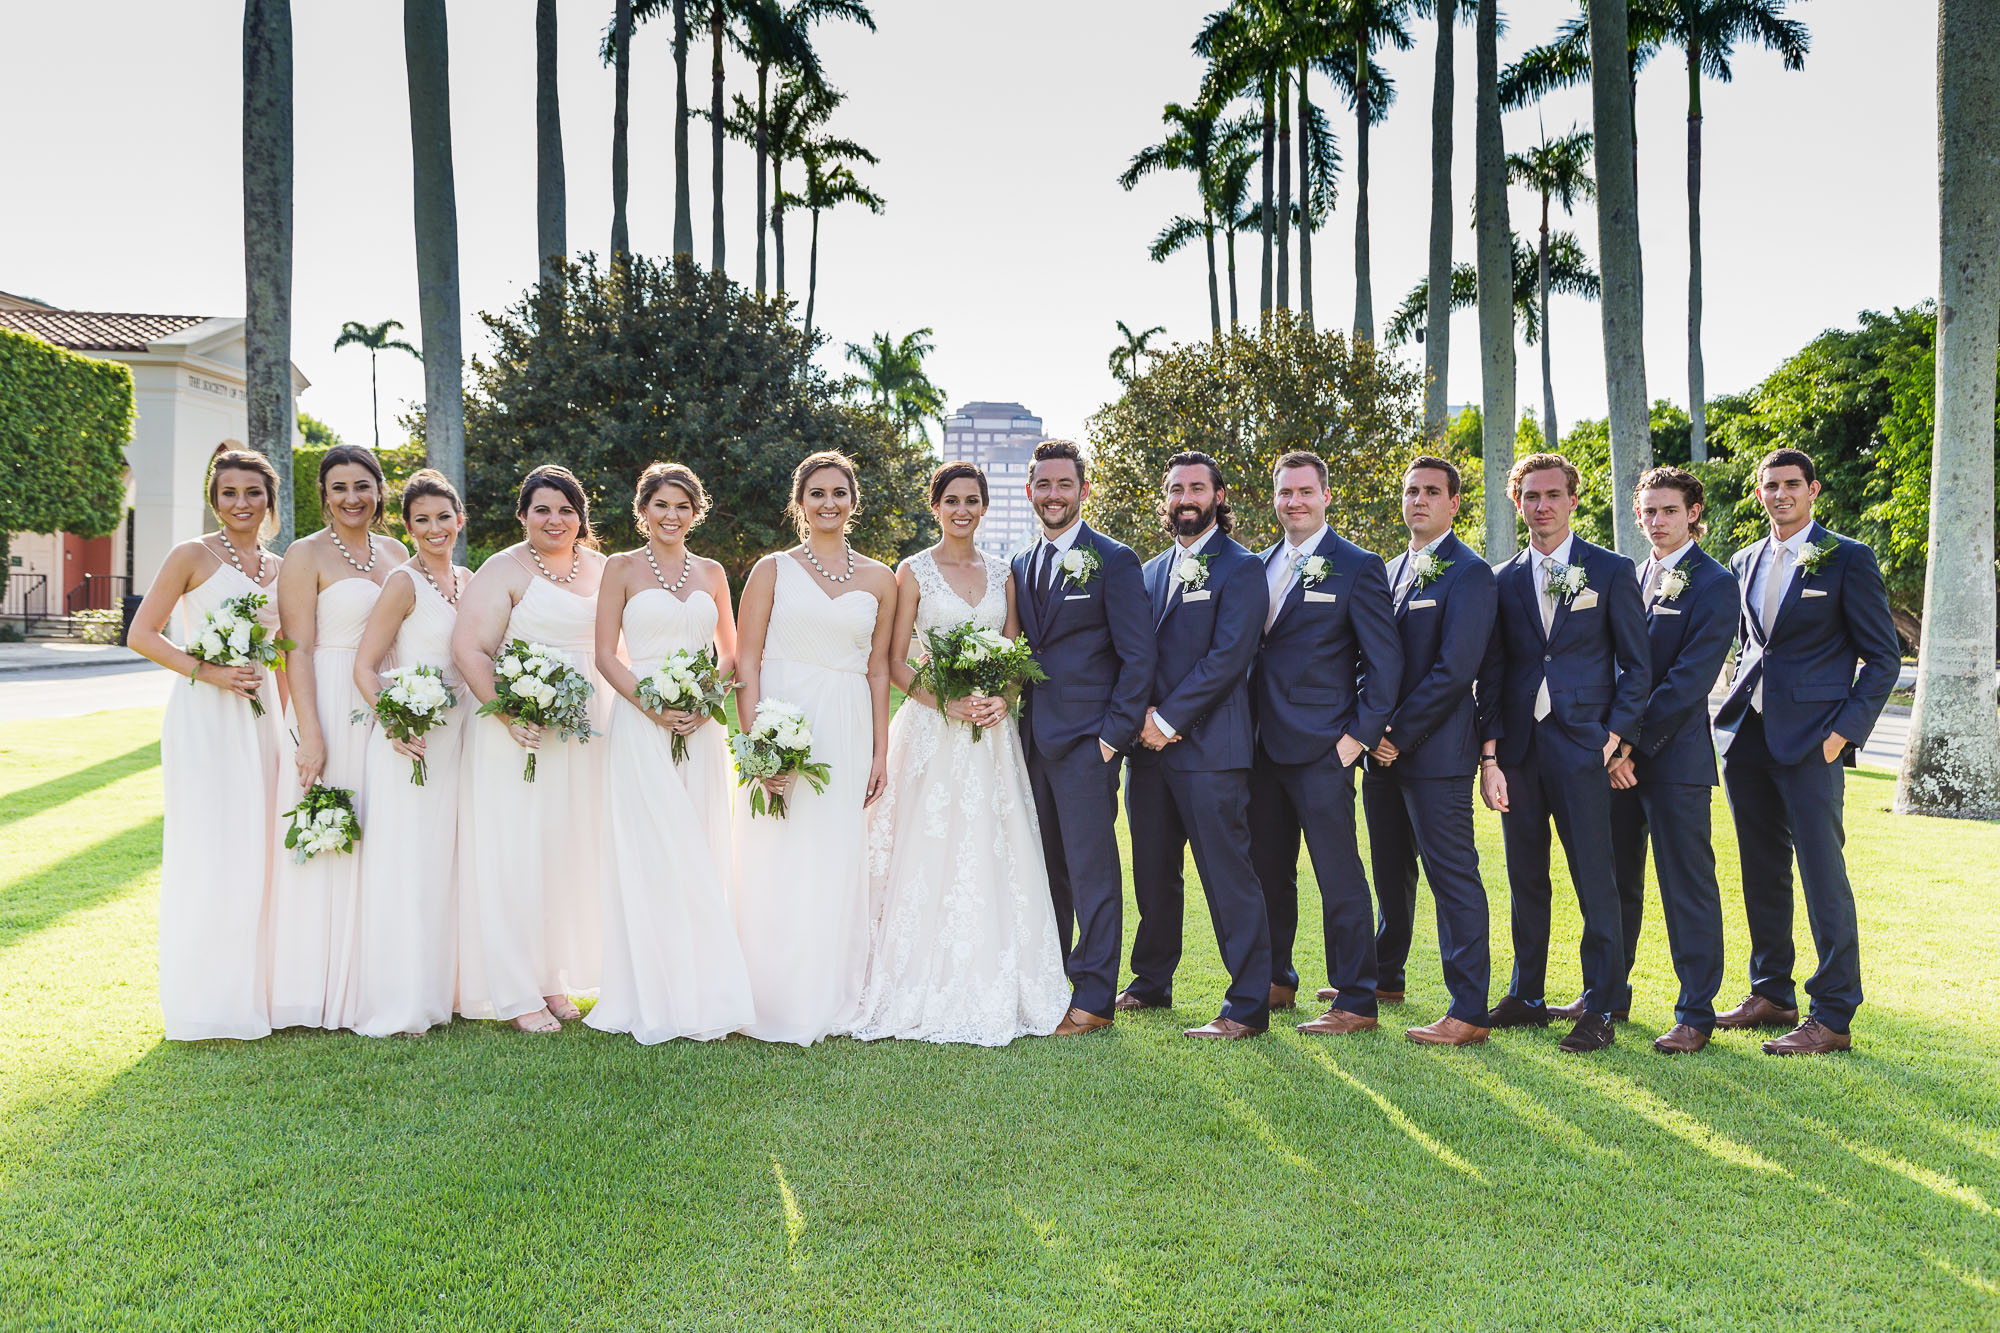 Greg Ferko Shot This Wedding in Ft Lauderdale 41